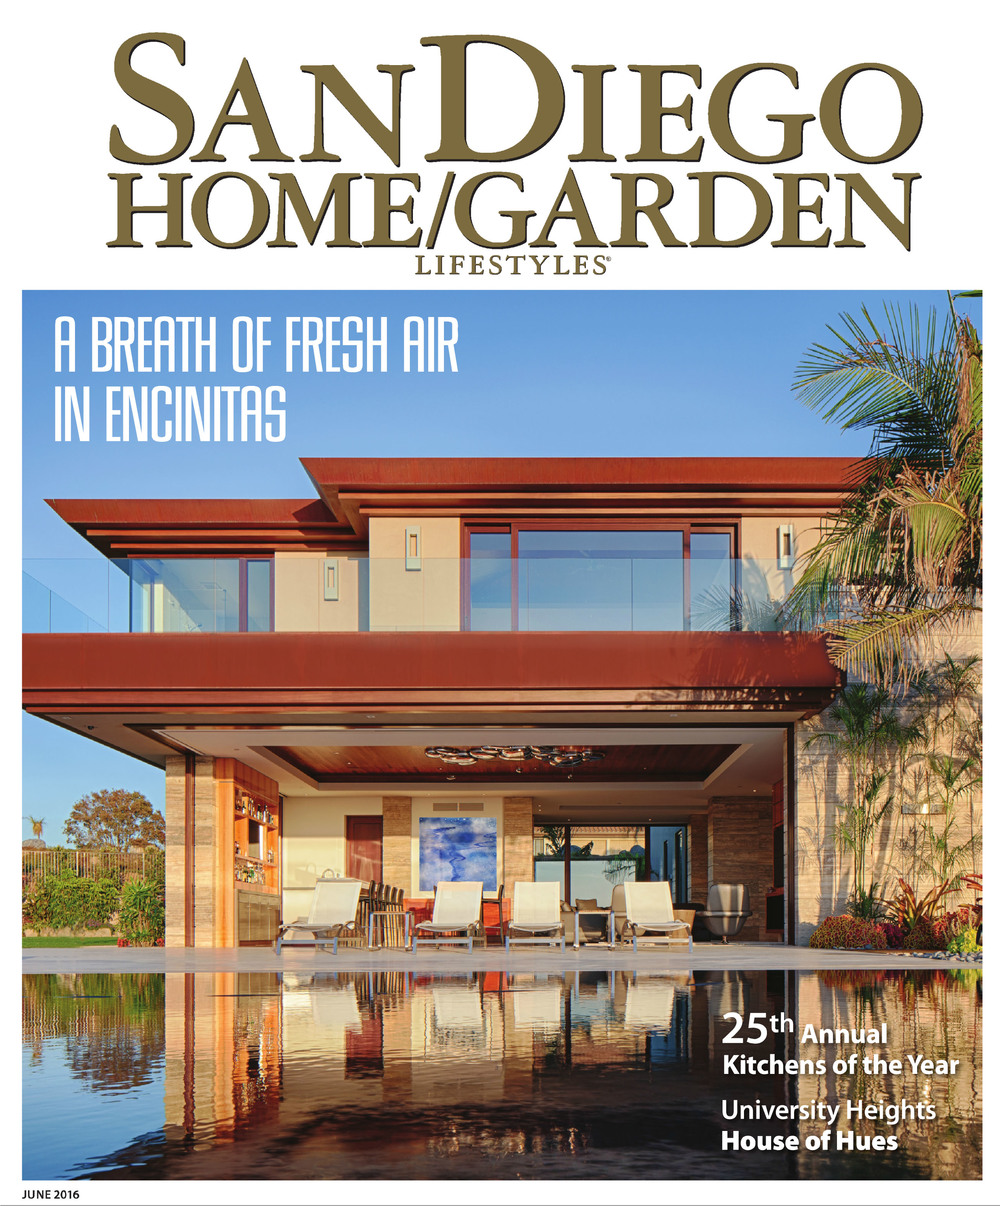 San Diego Home/Garden June 2016